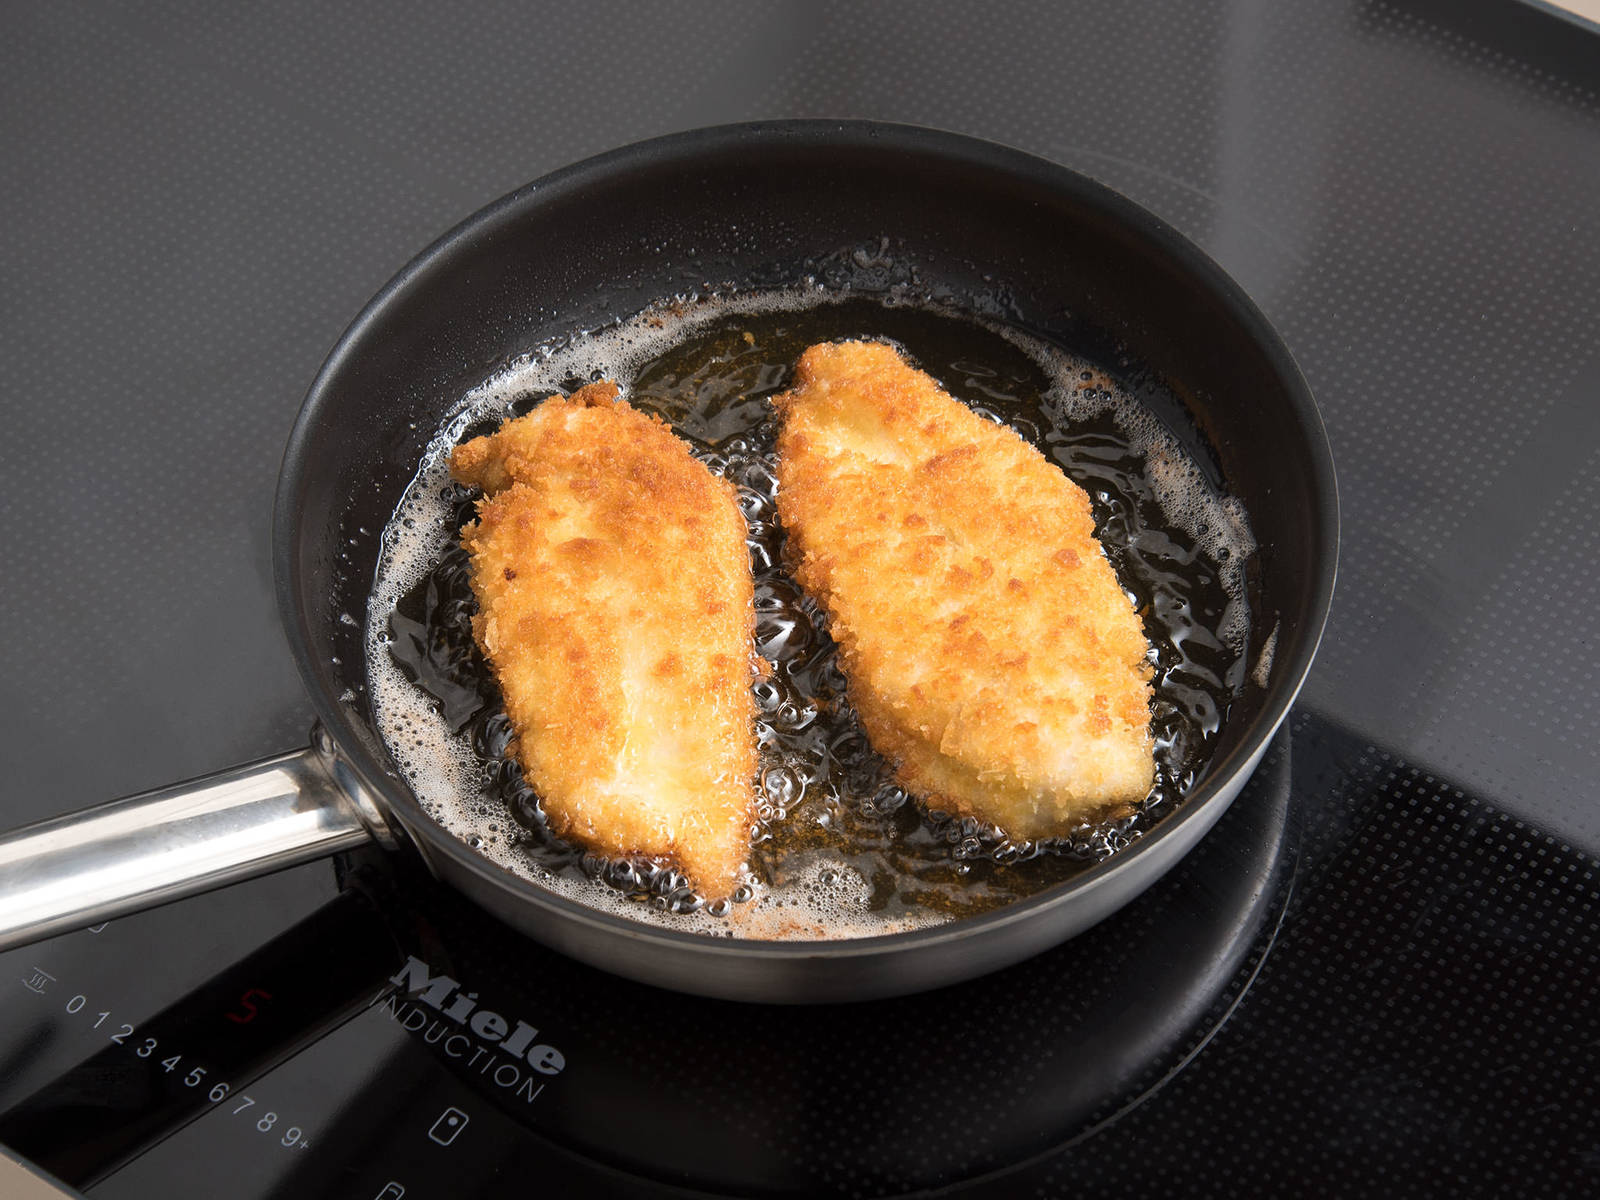 Add oil to a pan set over medium heat and fry chicken on each side for approx. 3 min., until brown and crispy. Serve chicken katsu with Chinese cabbage salad and rice and drizzled with mayonnaise sauce. Enjoy!